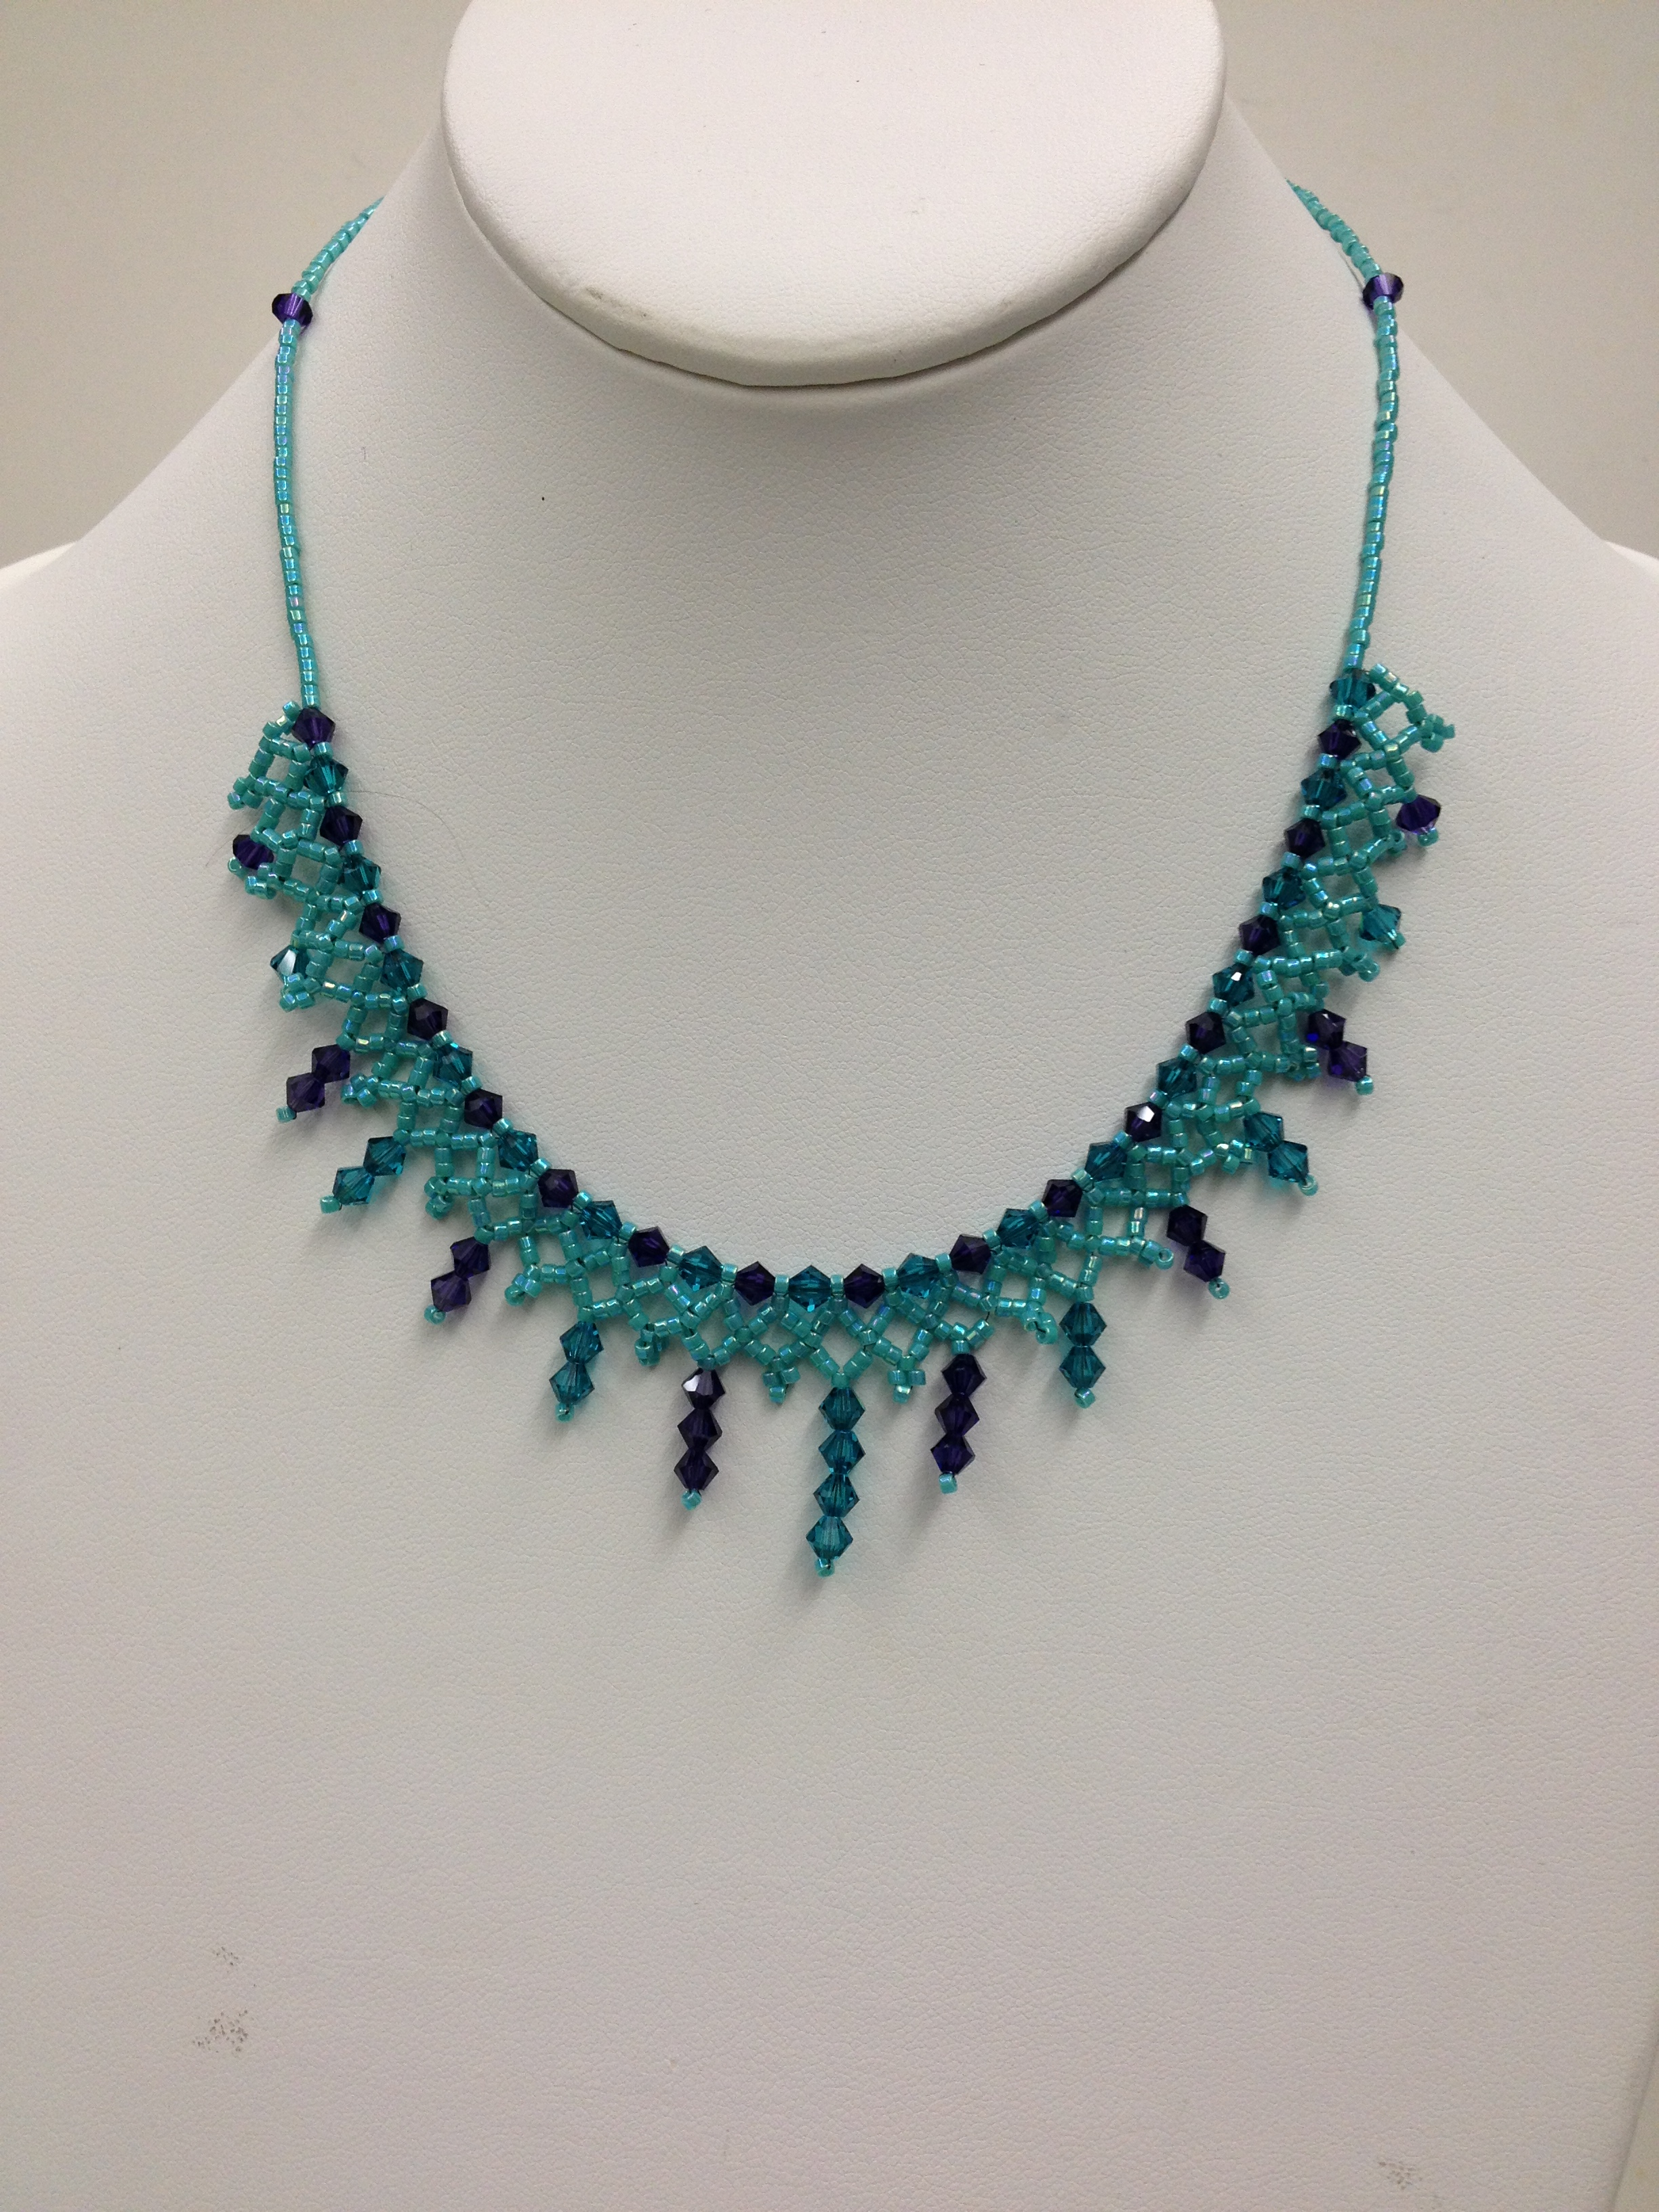 Crystal lace Necklace in teal and purple by Paula Binner